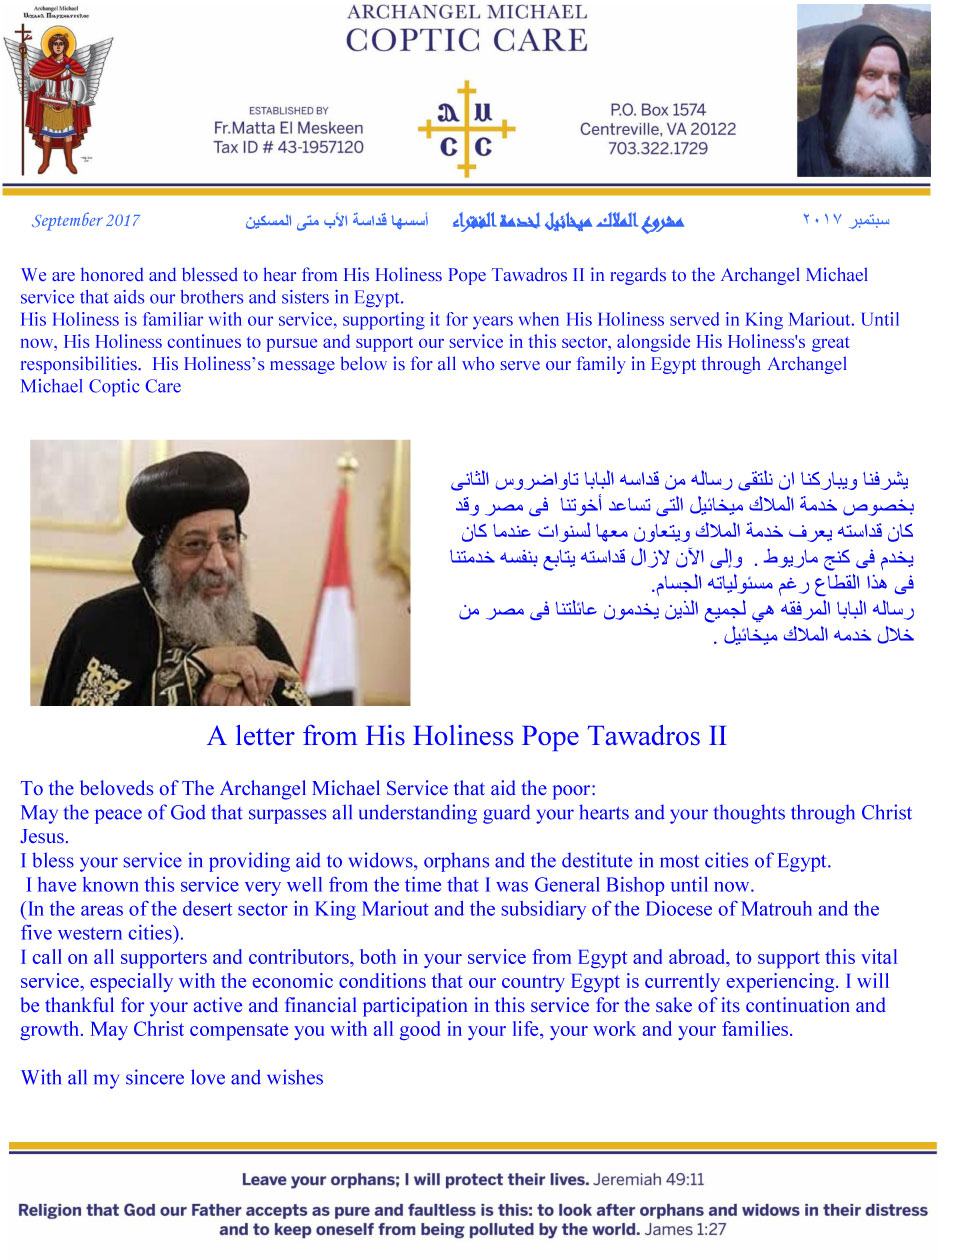 Pope-Tawadros-II-SEPTEMBER-LETTER-2017_1.jpg